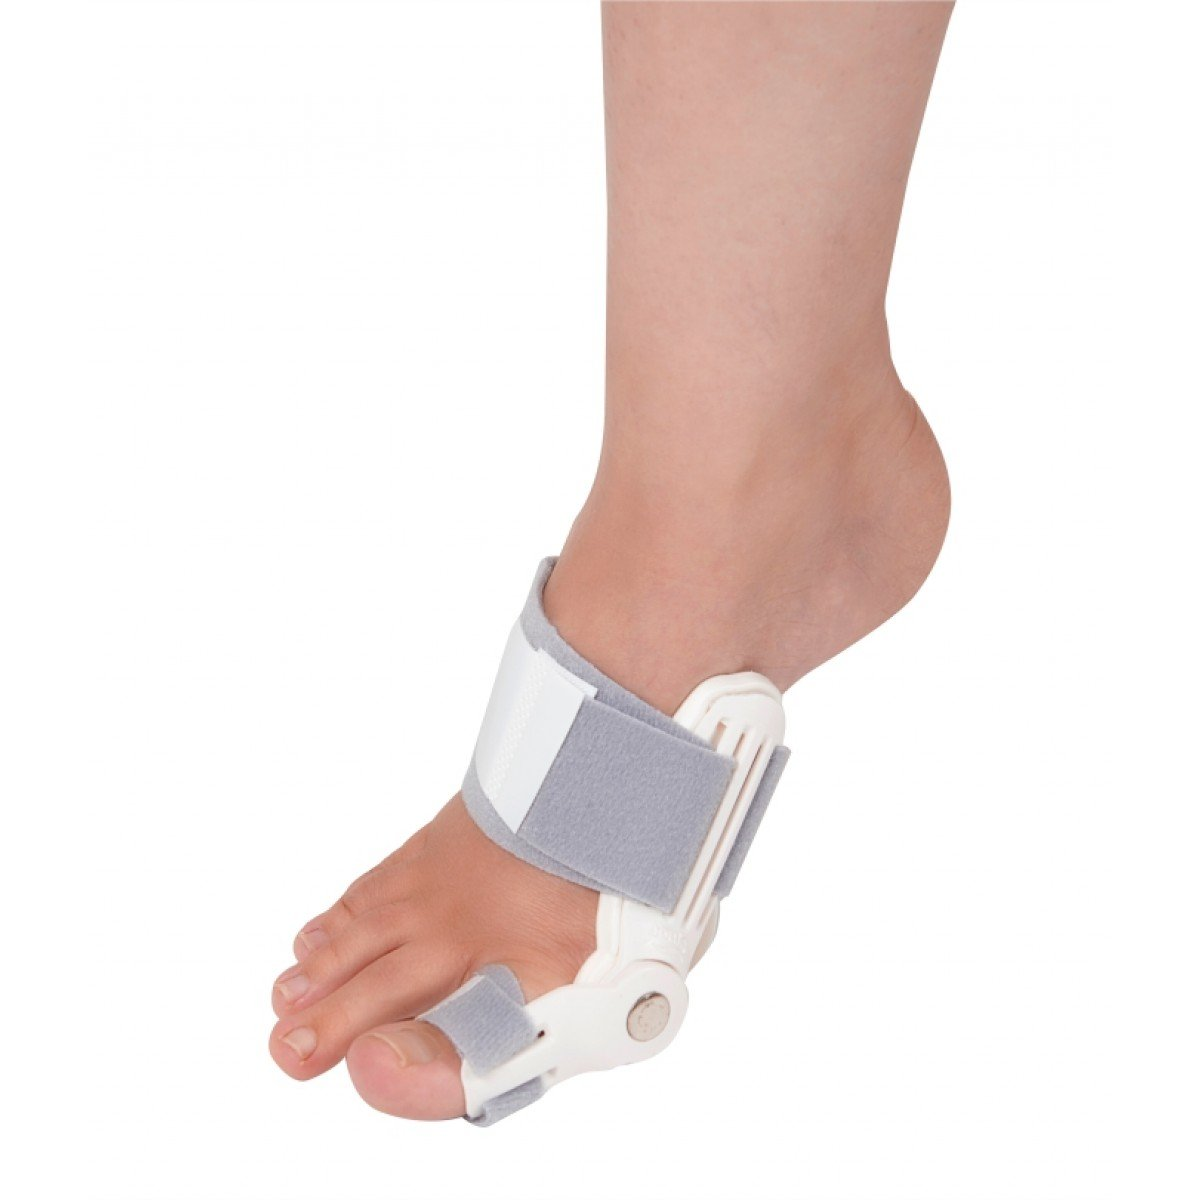 Tynor Australia Bunion Splint Foot Physio Supplies Orthopedic aids Physio Supports Australia